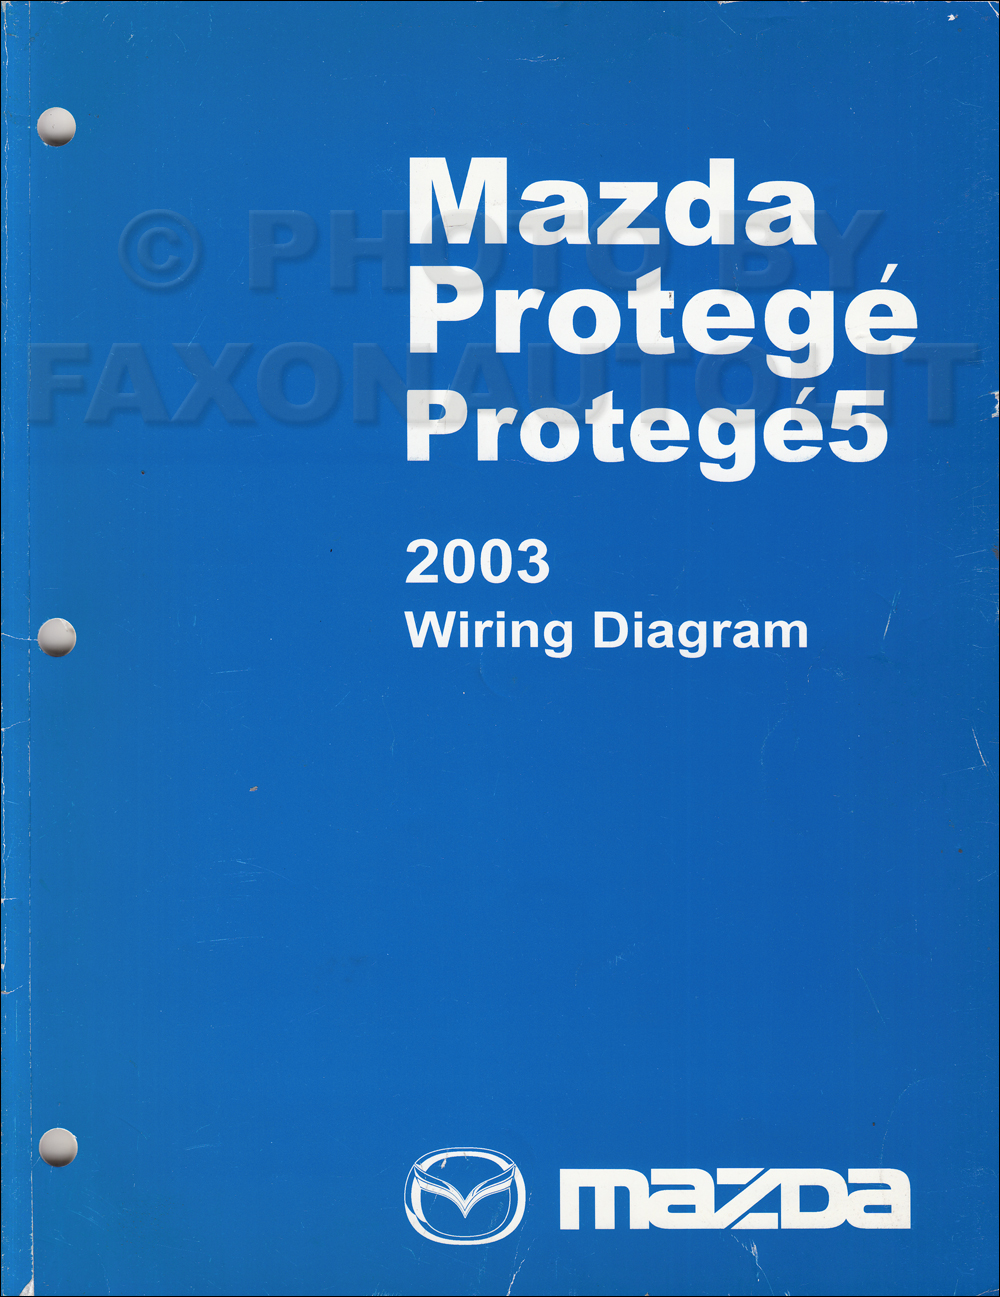 2002 Mazda Protege5 Wiring Diagrams Simple Electrical Diagram 2006 B3000 Engine 2003 Protege And Manual Original Stock